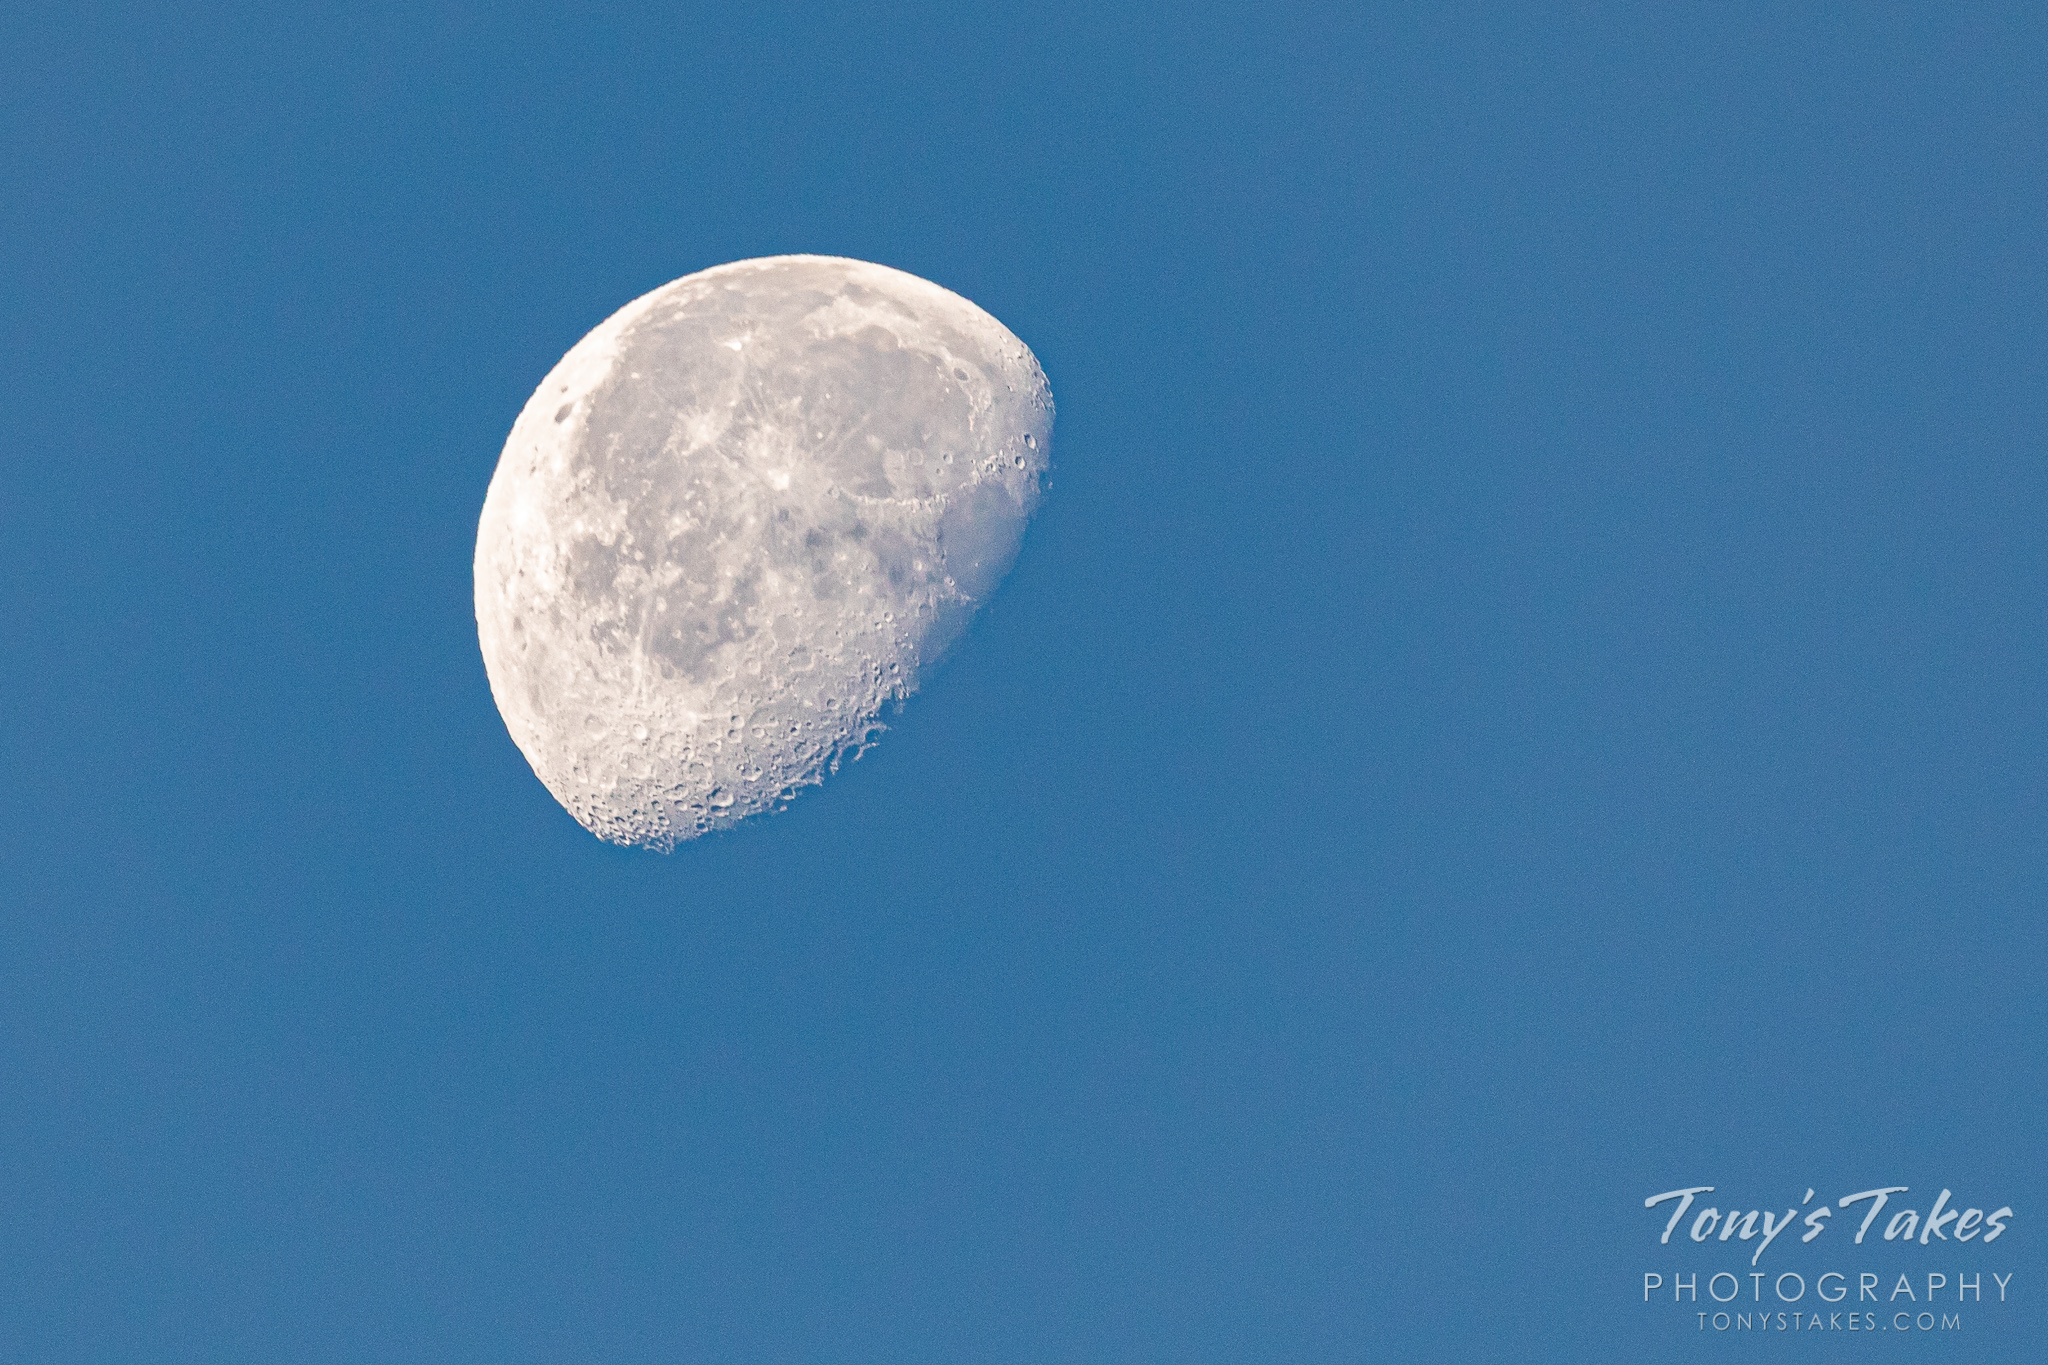 A waning gibbous moon over Colorado. (© Tony's Takes)